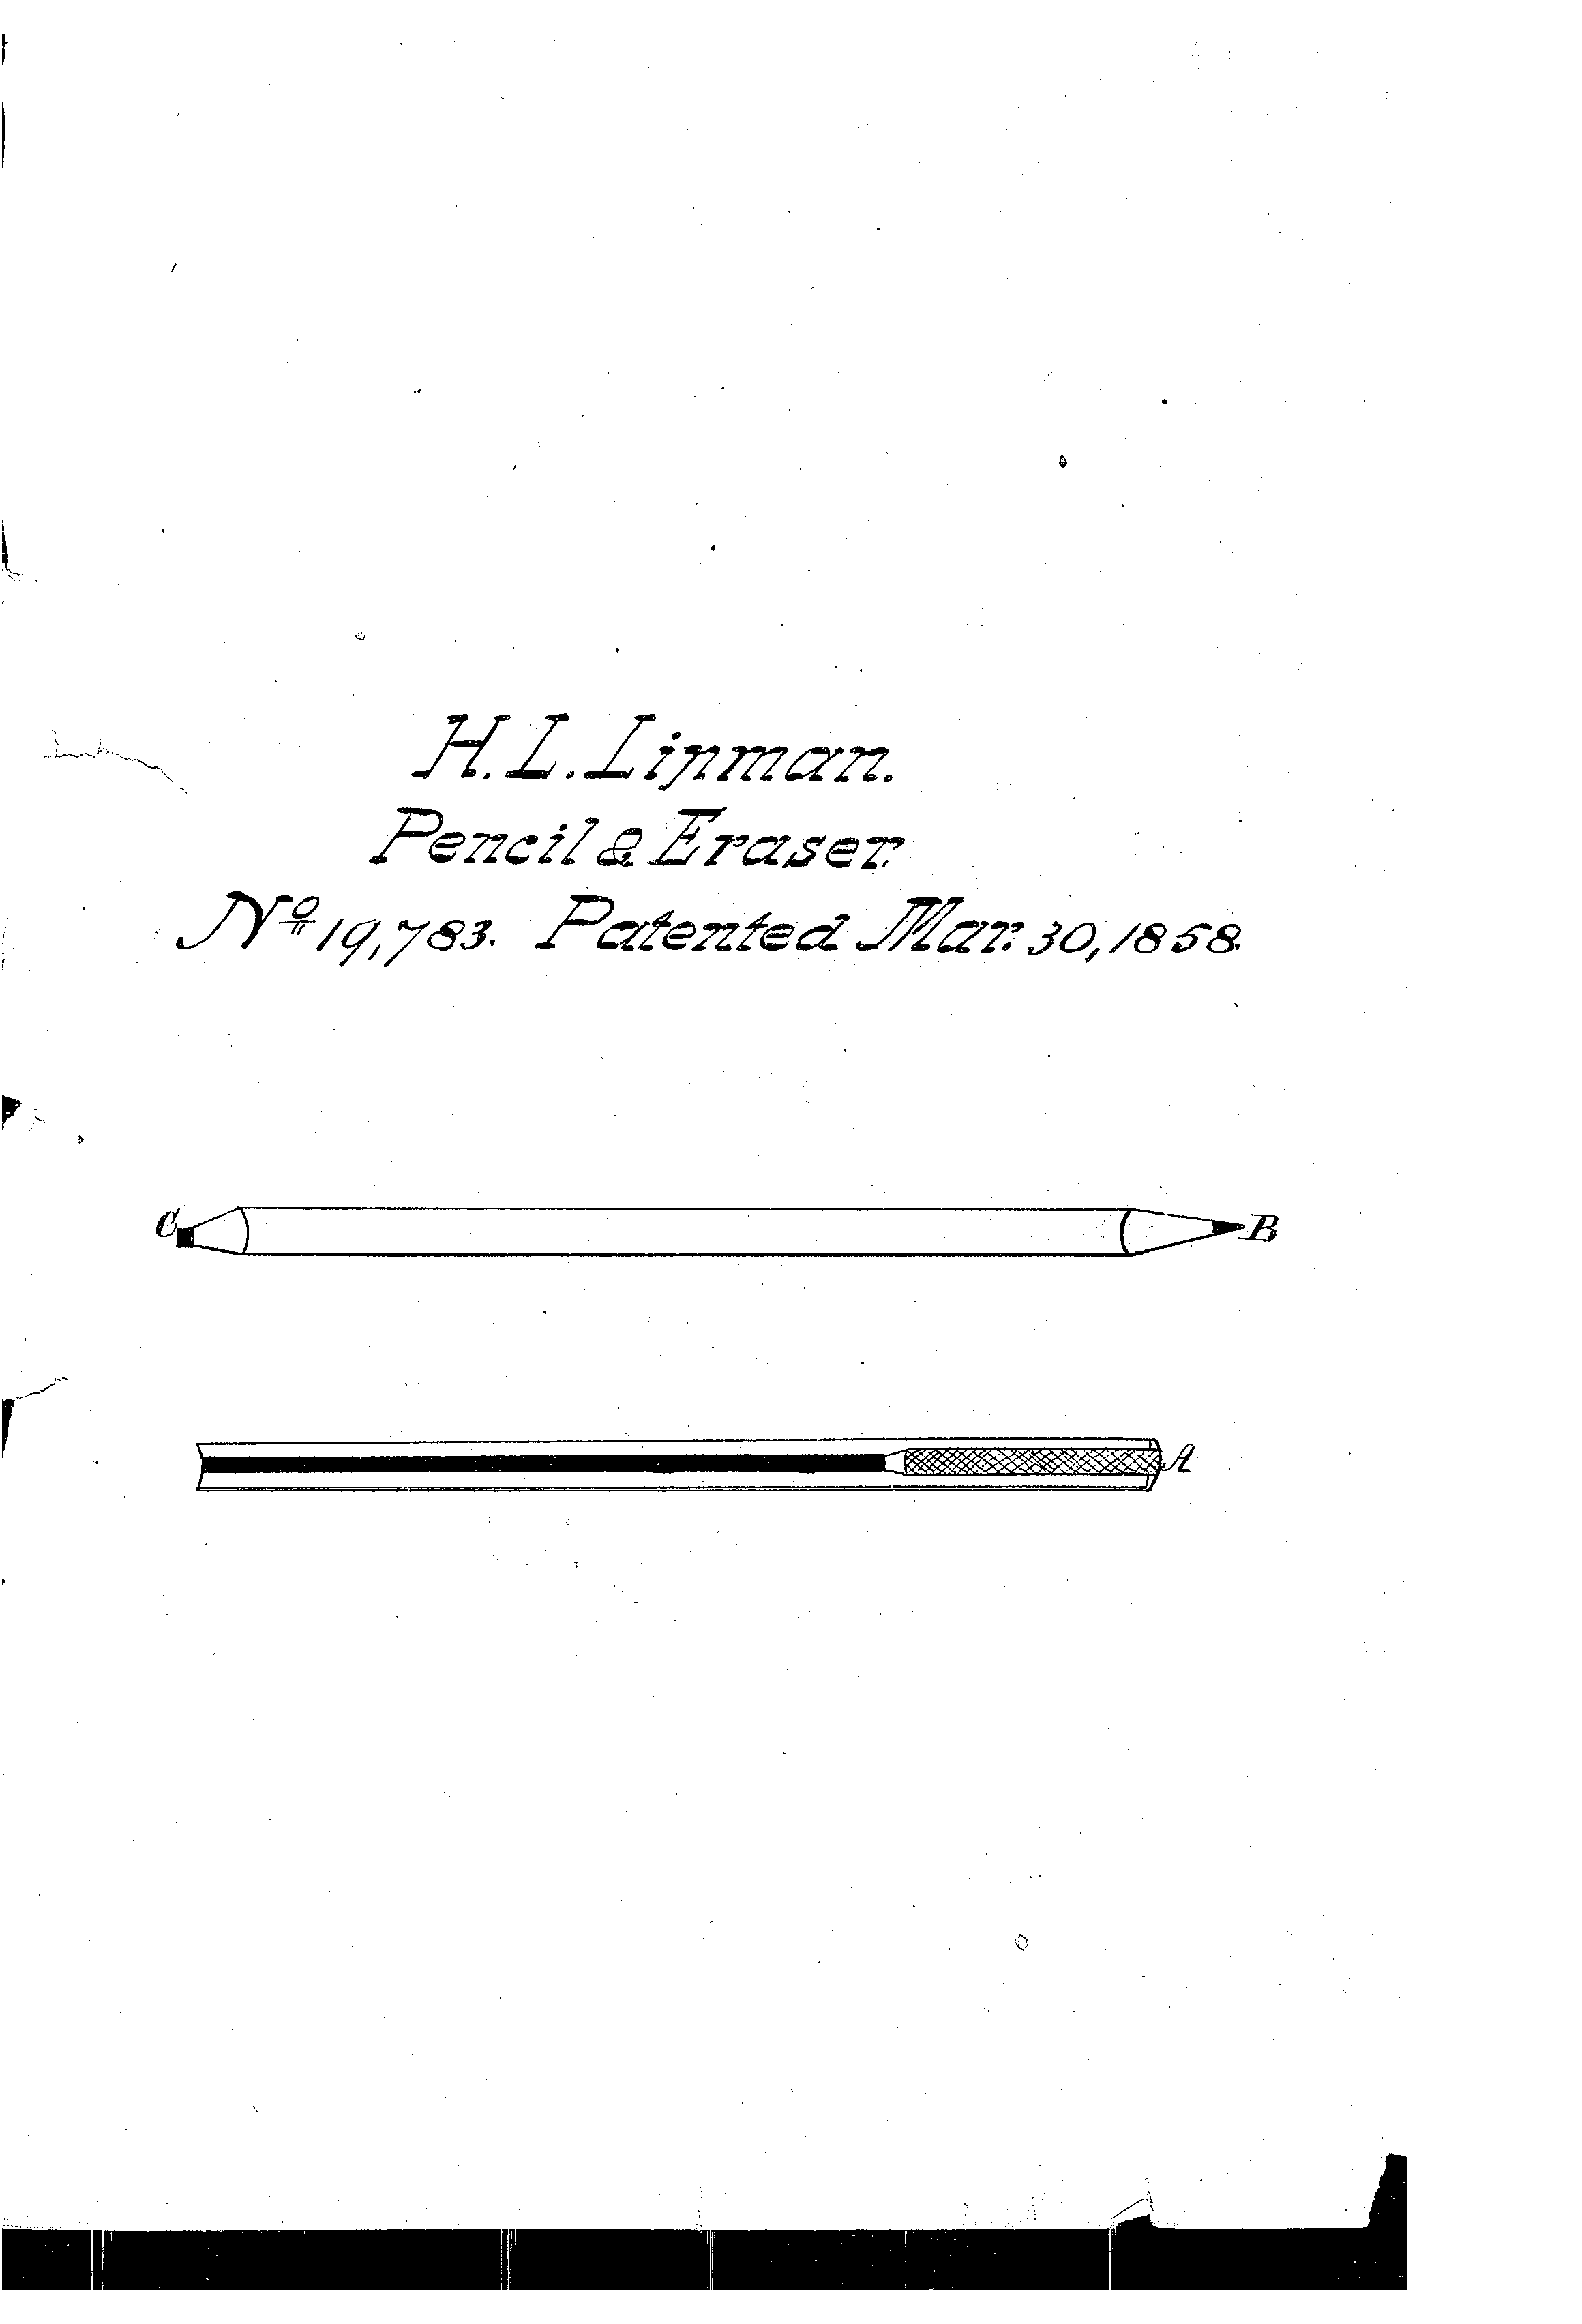 US19783-drawings-page-1